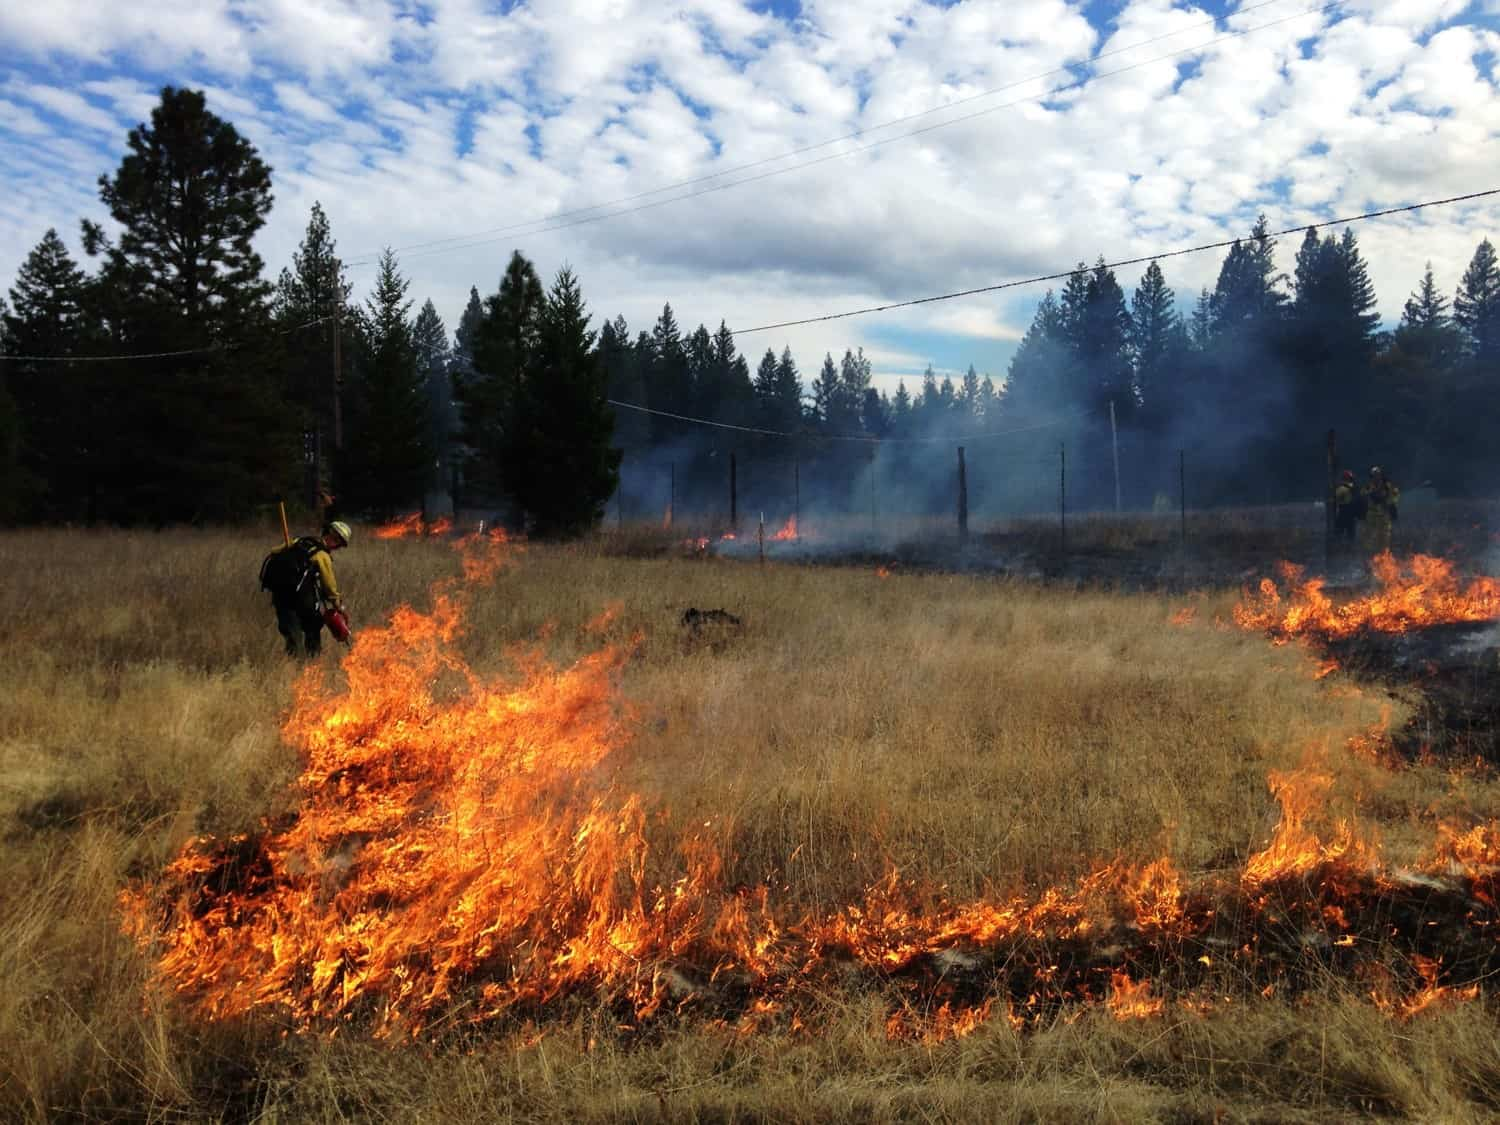 A fire practitioner lighting a controlled burn in a grassland